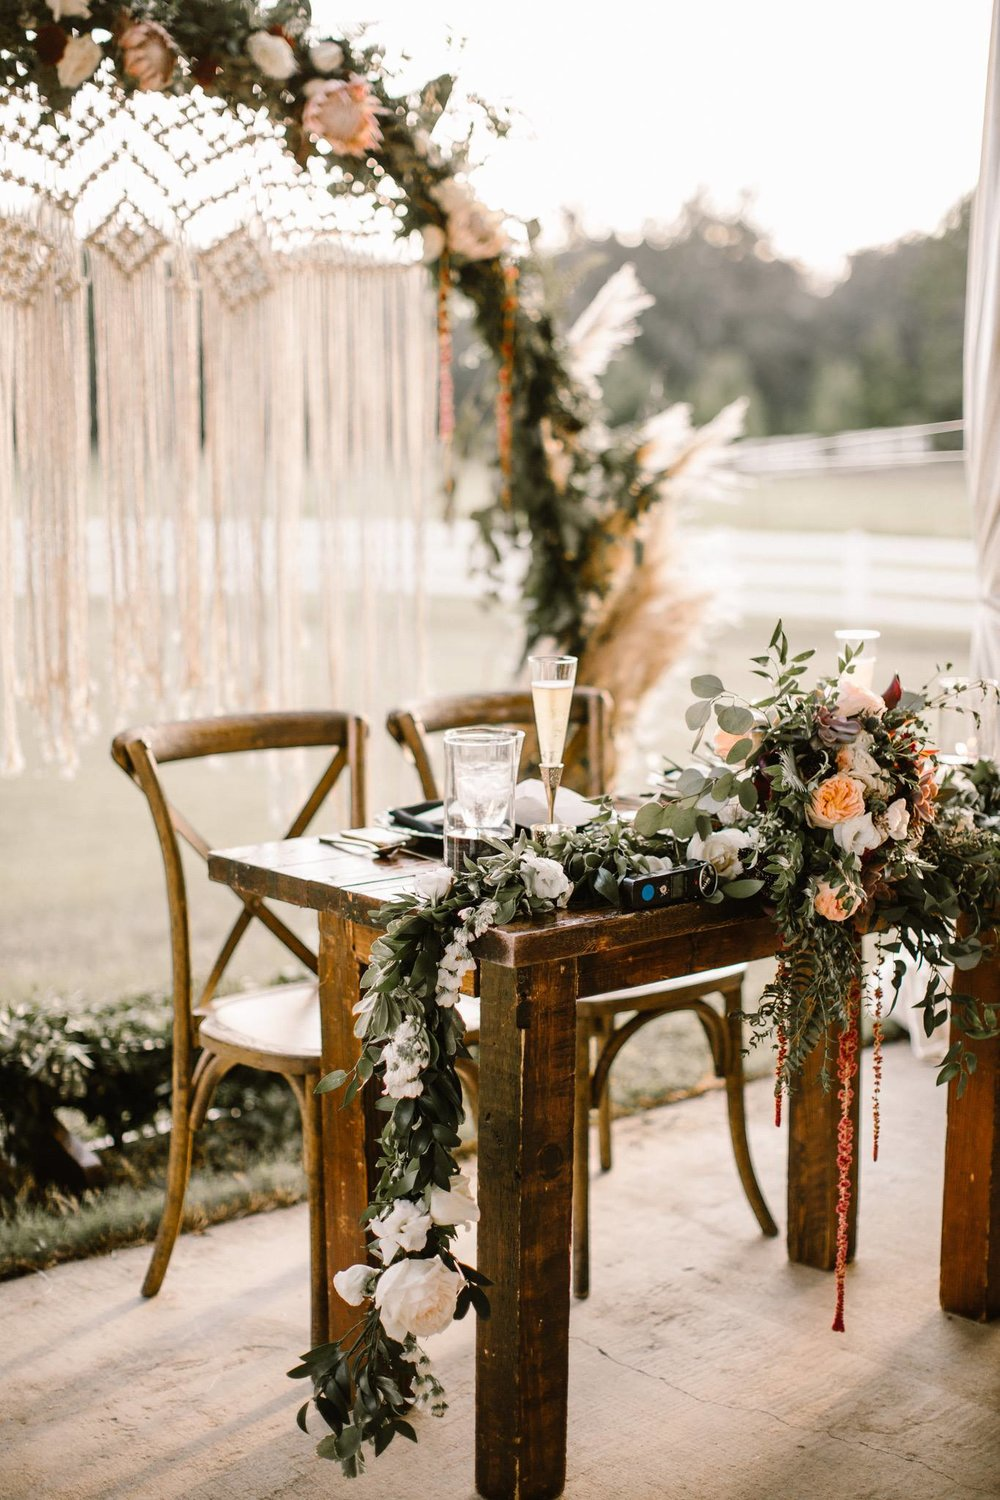 Preferred Vendors - We know how important each detail of your wedding is and that is why we carefully selected the best vendors we could find. See our full list and check out what they each have to offer.